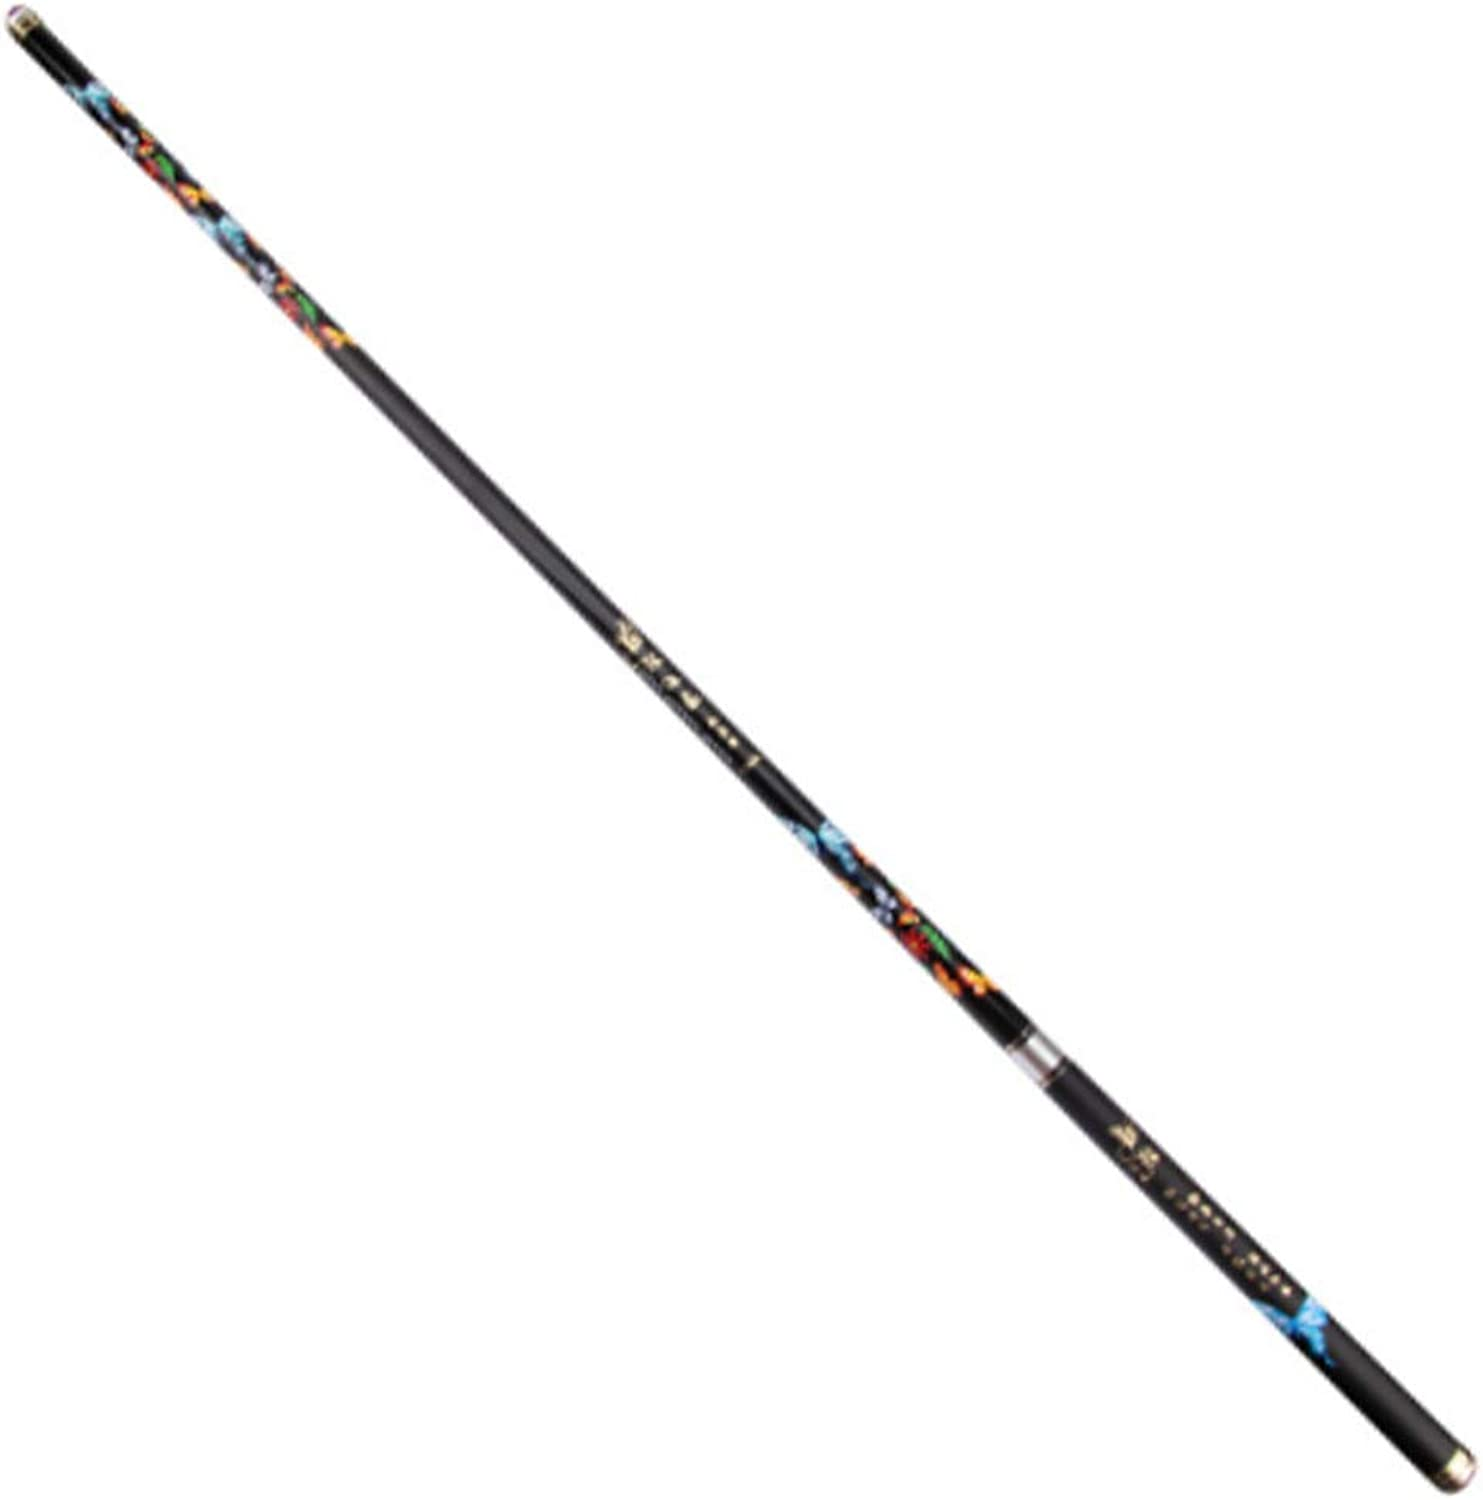 HYYQG Kohlefaser Casting Rod Teleskop Tragbare Angelrute 2,1-3,6 Mt Super Light Hard Stream Ultraleicht Pole Super Hard Karpfenruten